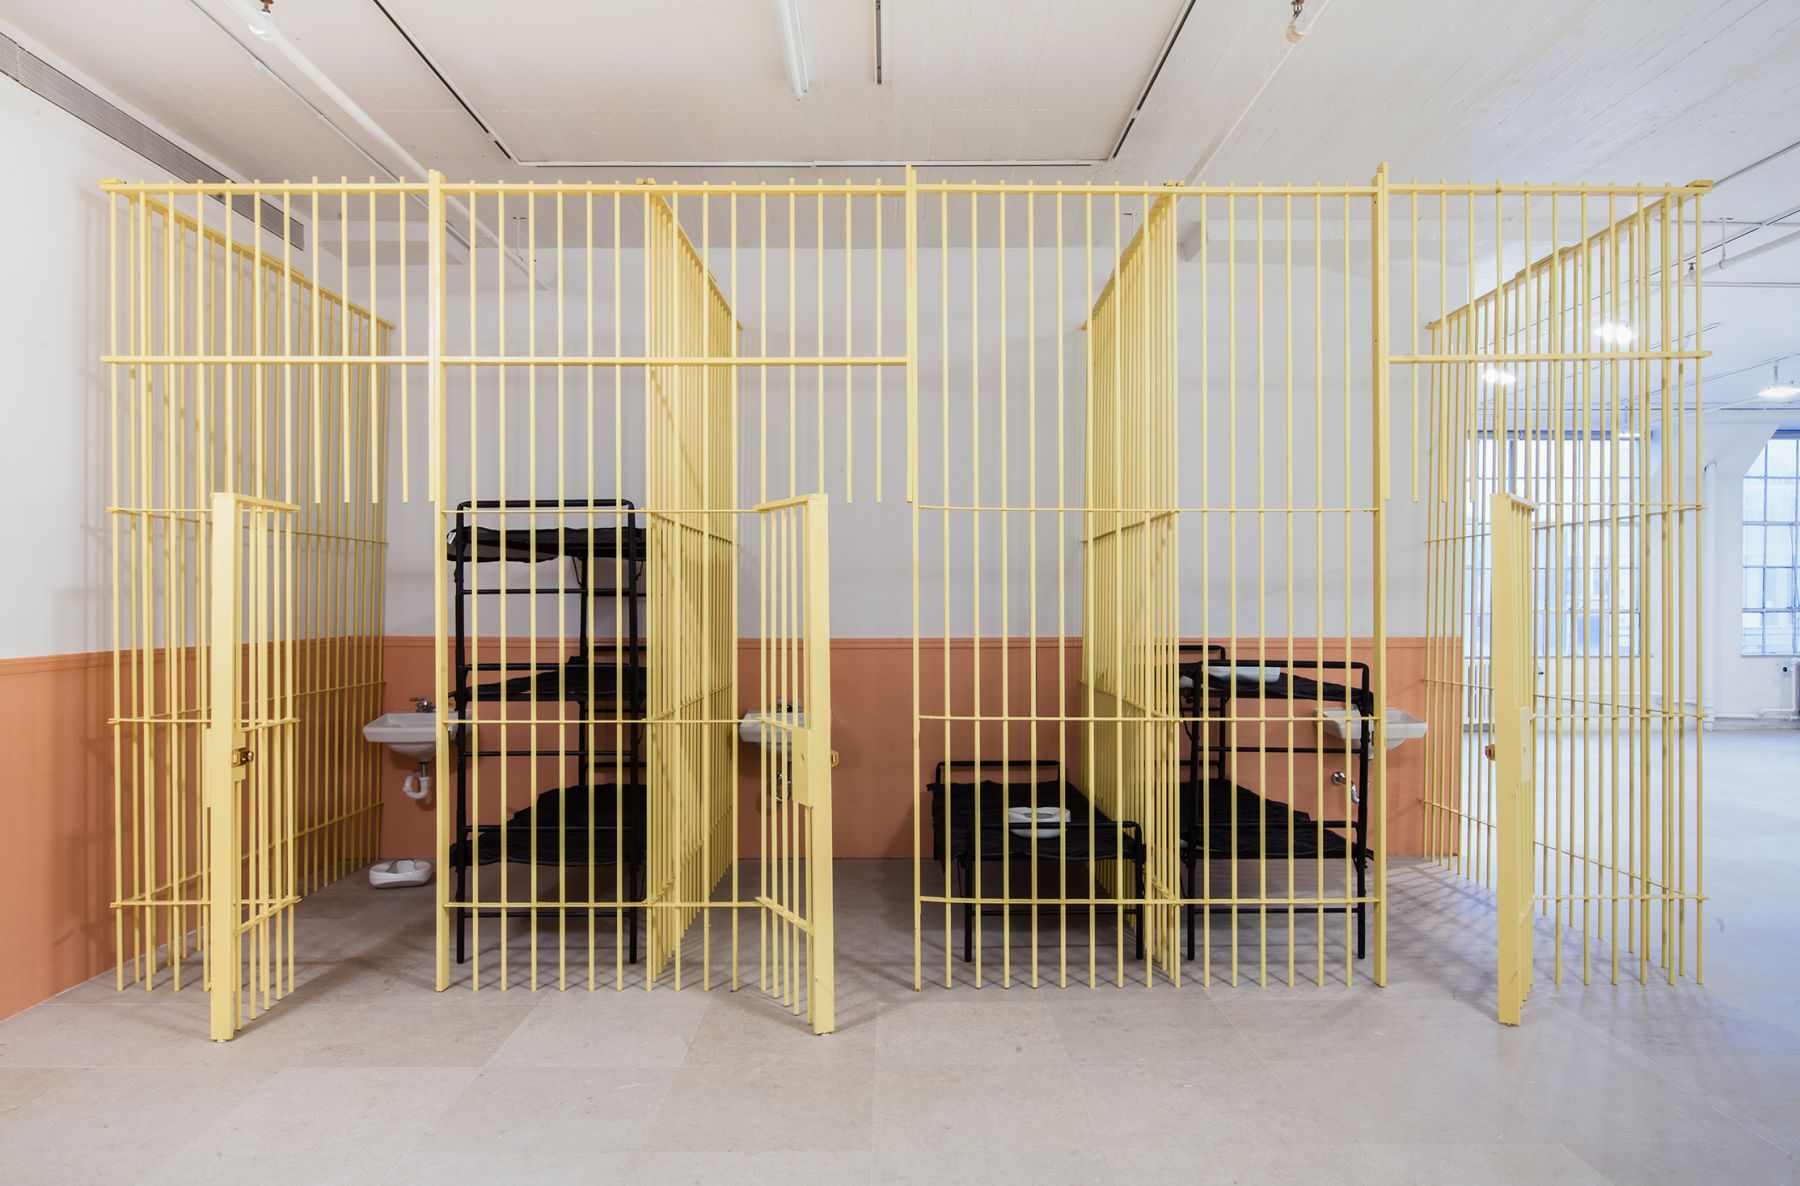 Tony Conrad  WiP, 2013  Installation view, Greene Naftali, New York, 2013